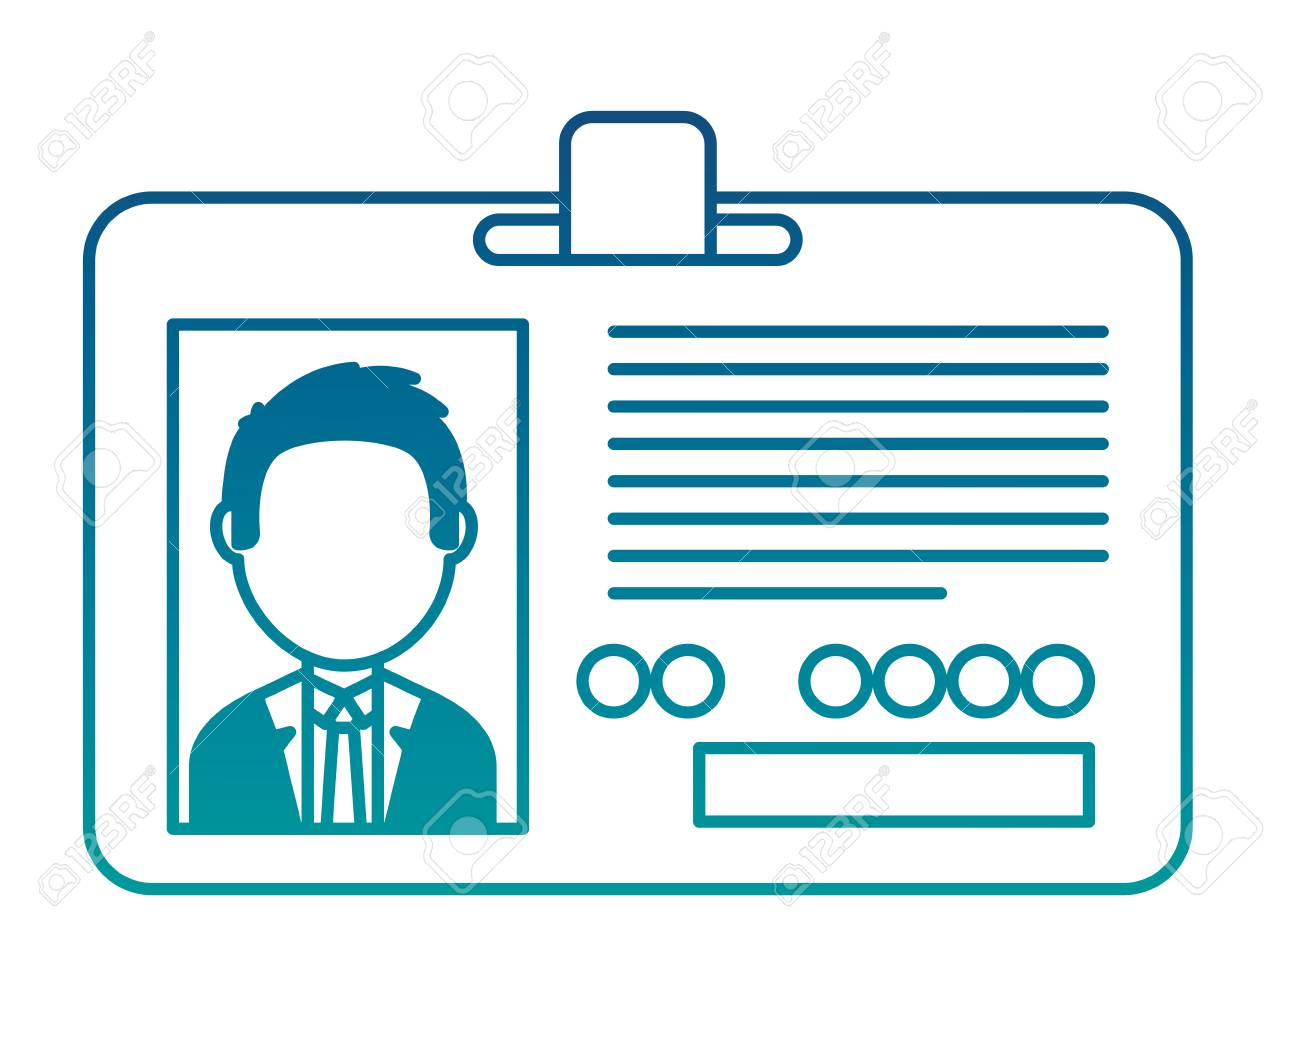 Corporate id card employee photo vector illustration neon color - 101115031